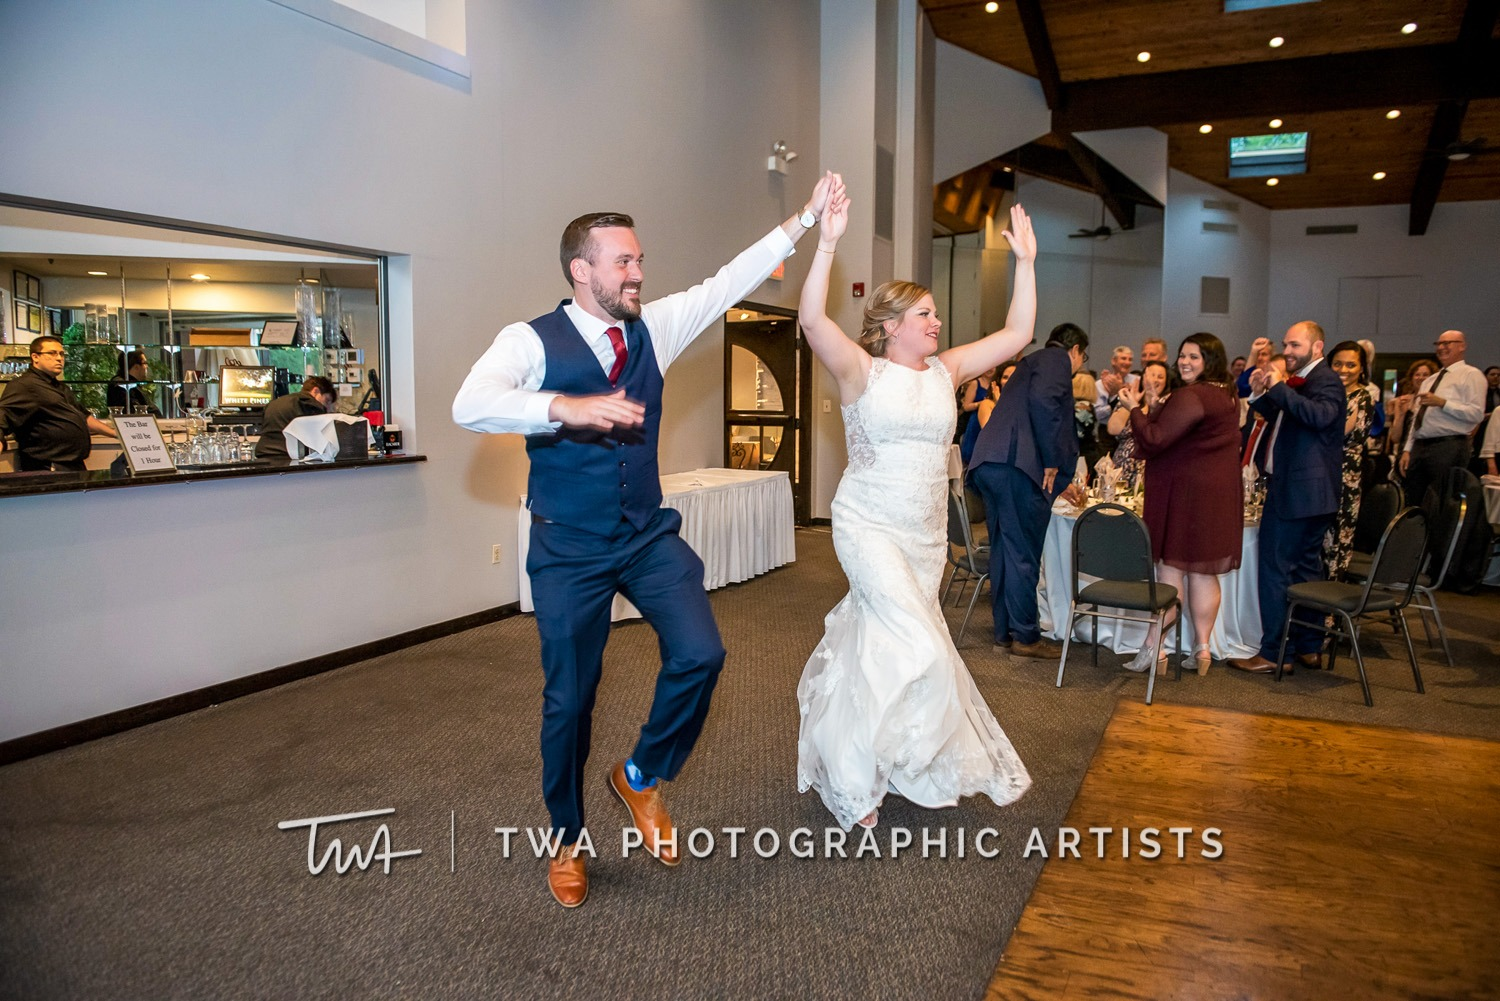 Chicago-Wedding-Photographer-TWA-Photographic-Artists-White-Pines-Banquets_Petersen_Sherman_ZZ_DL-061_0623